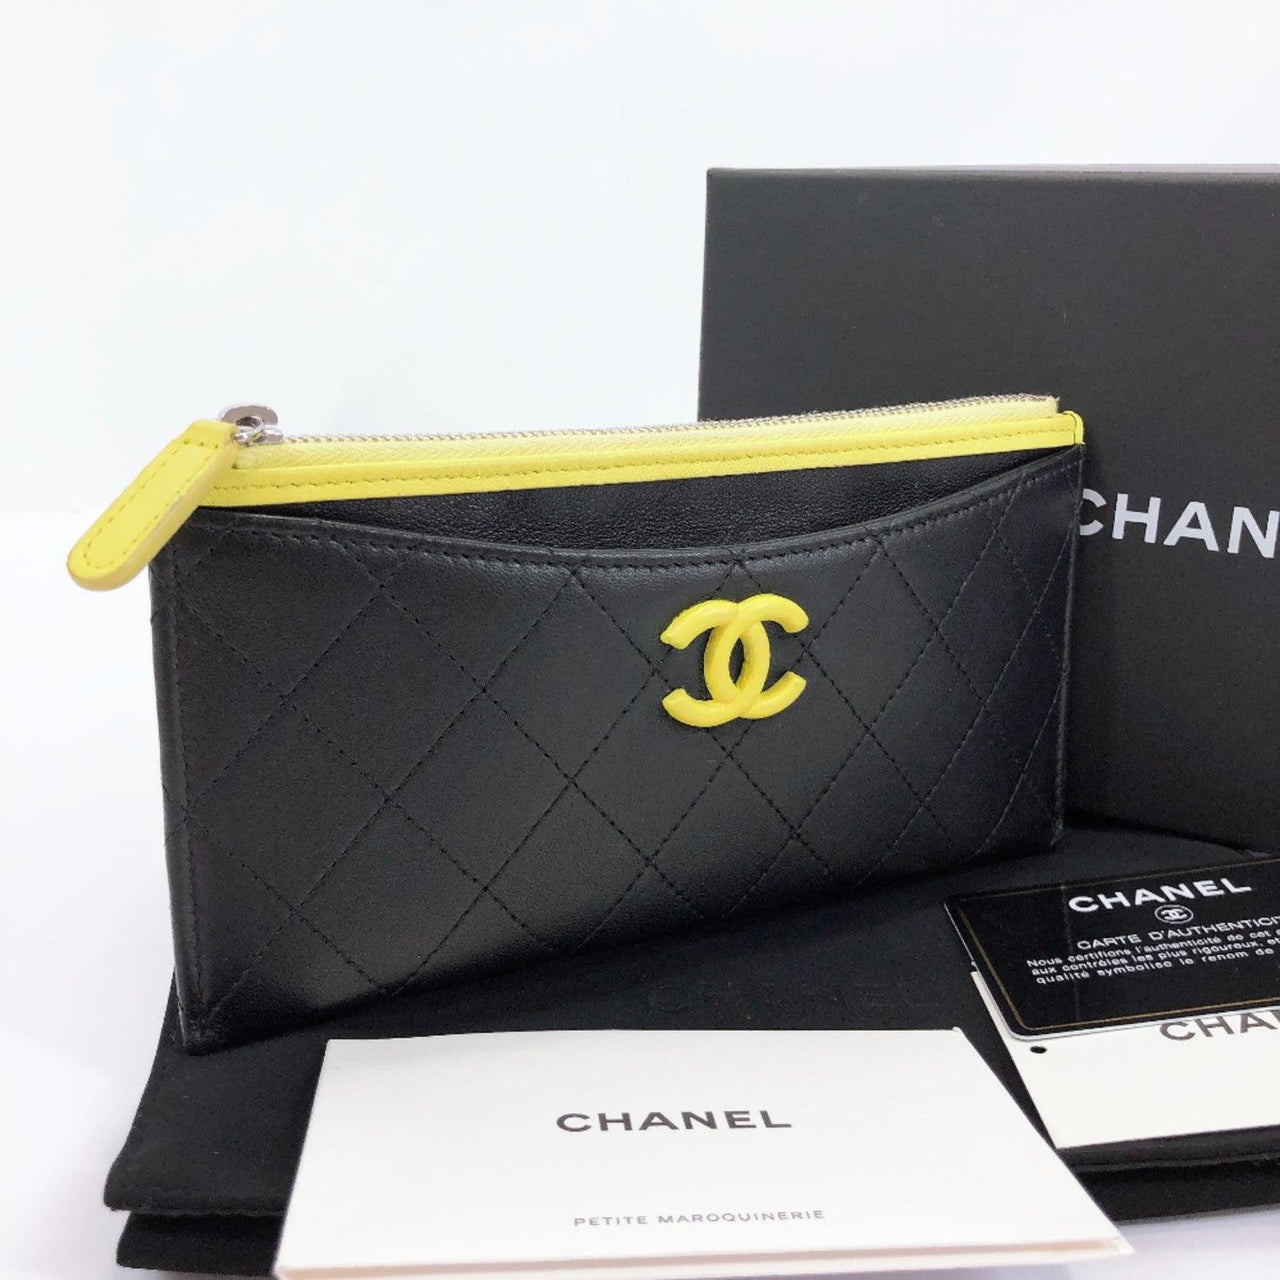 CHANEL purse Matelasse Classic pouch leather black yellow Women Used